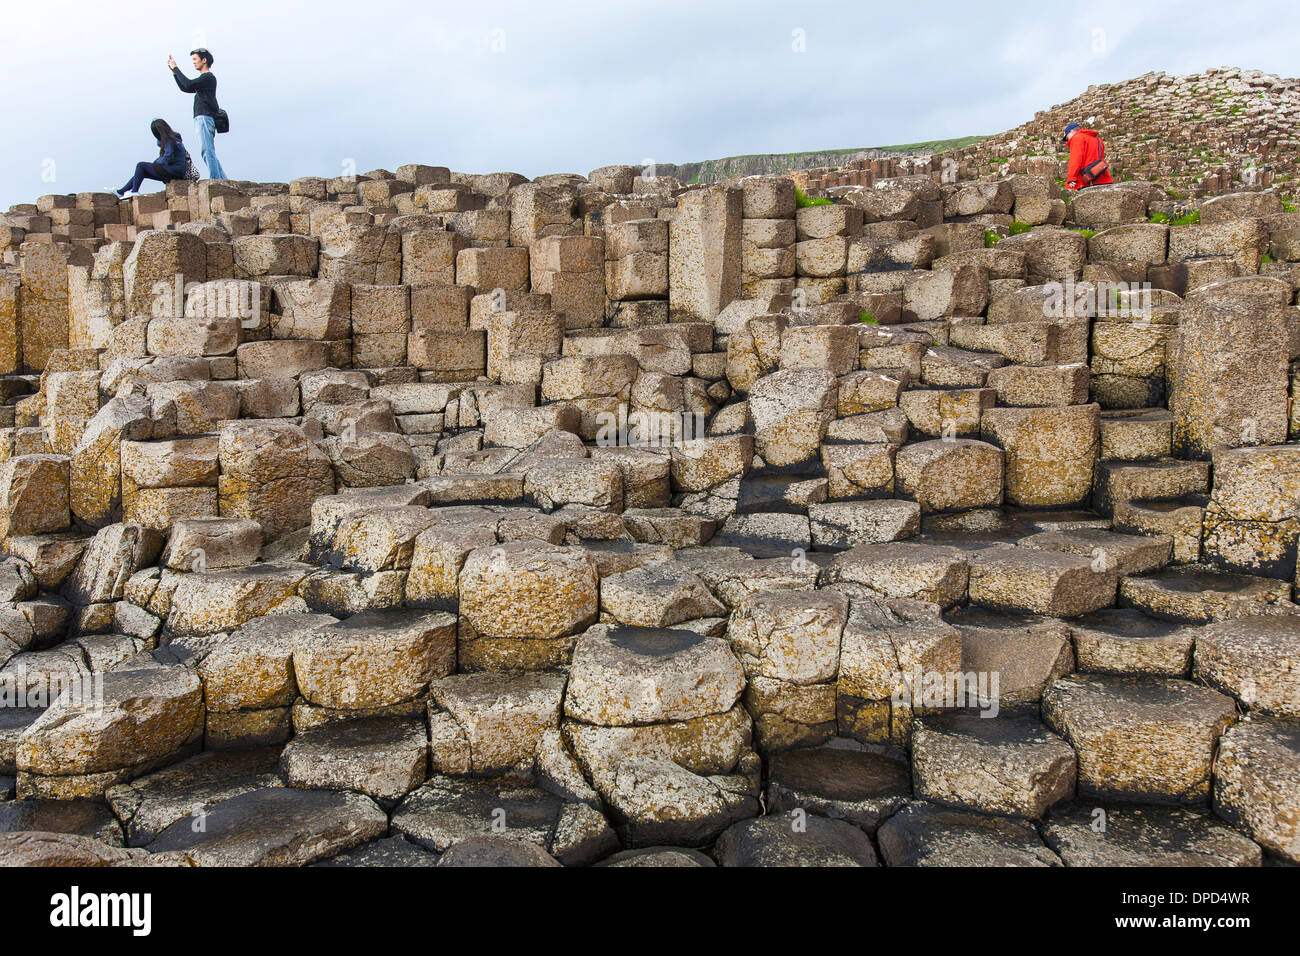 Visitors clamber and climb over the basalt columns that make up the world famous Giants Causeway in County Antrim. - Stock Image